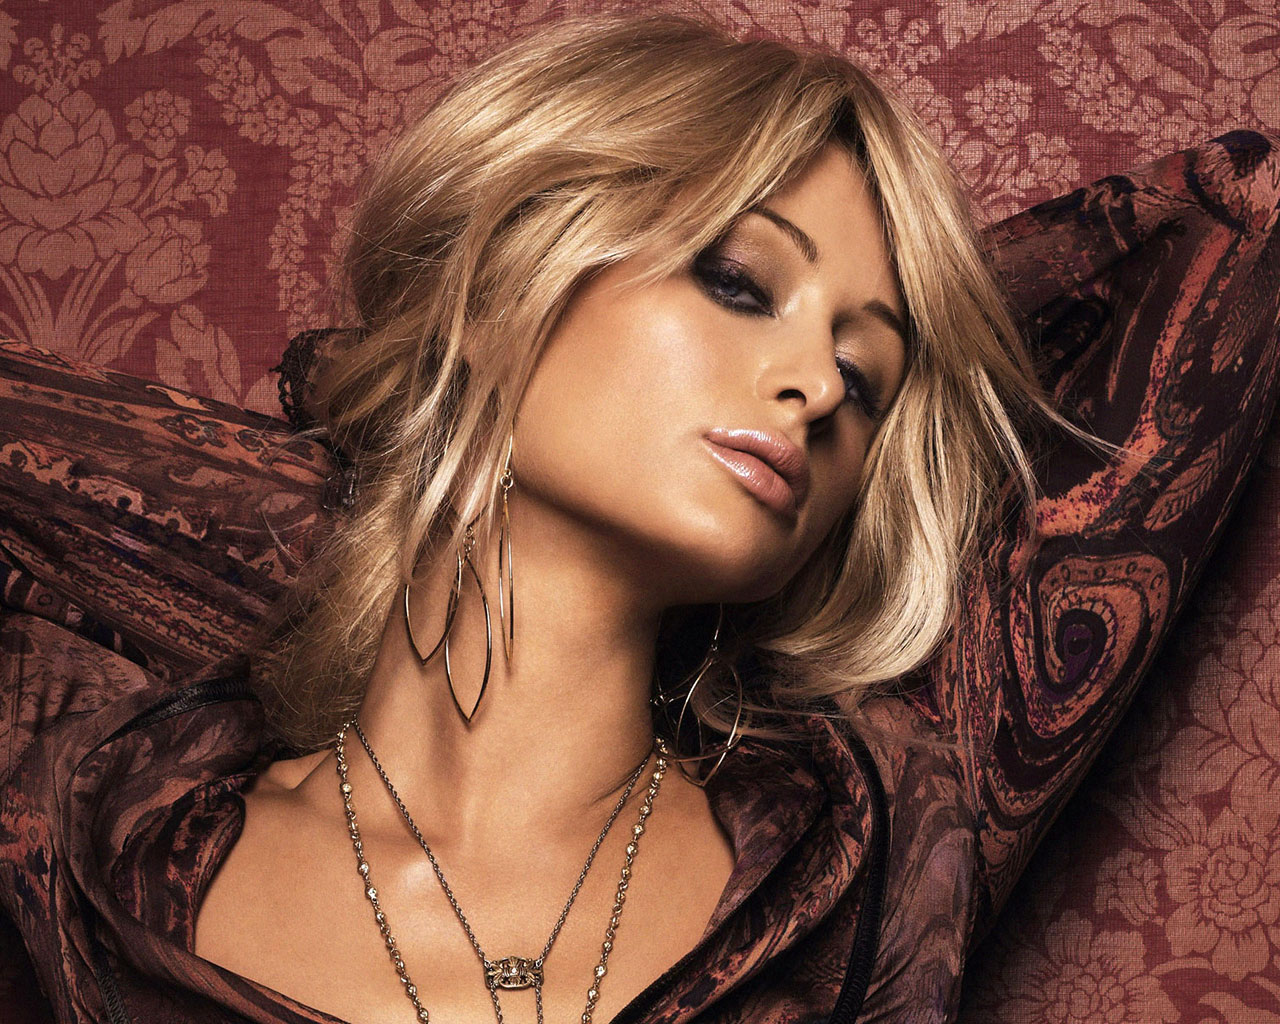 paris hilton hot wallpapers hollywood celebrity wallpapers hot wallpapers sexy pictures and. Black Bedroom Furniture Sets. Home Design Ideas